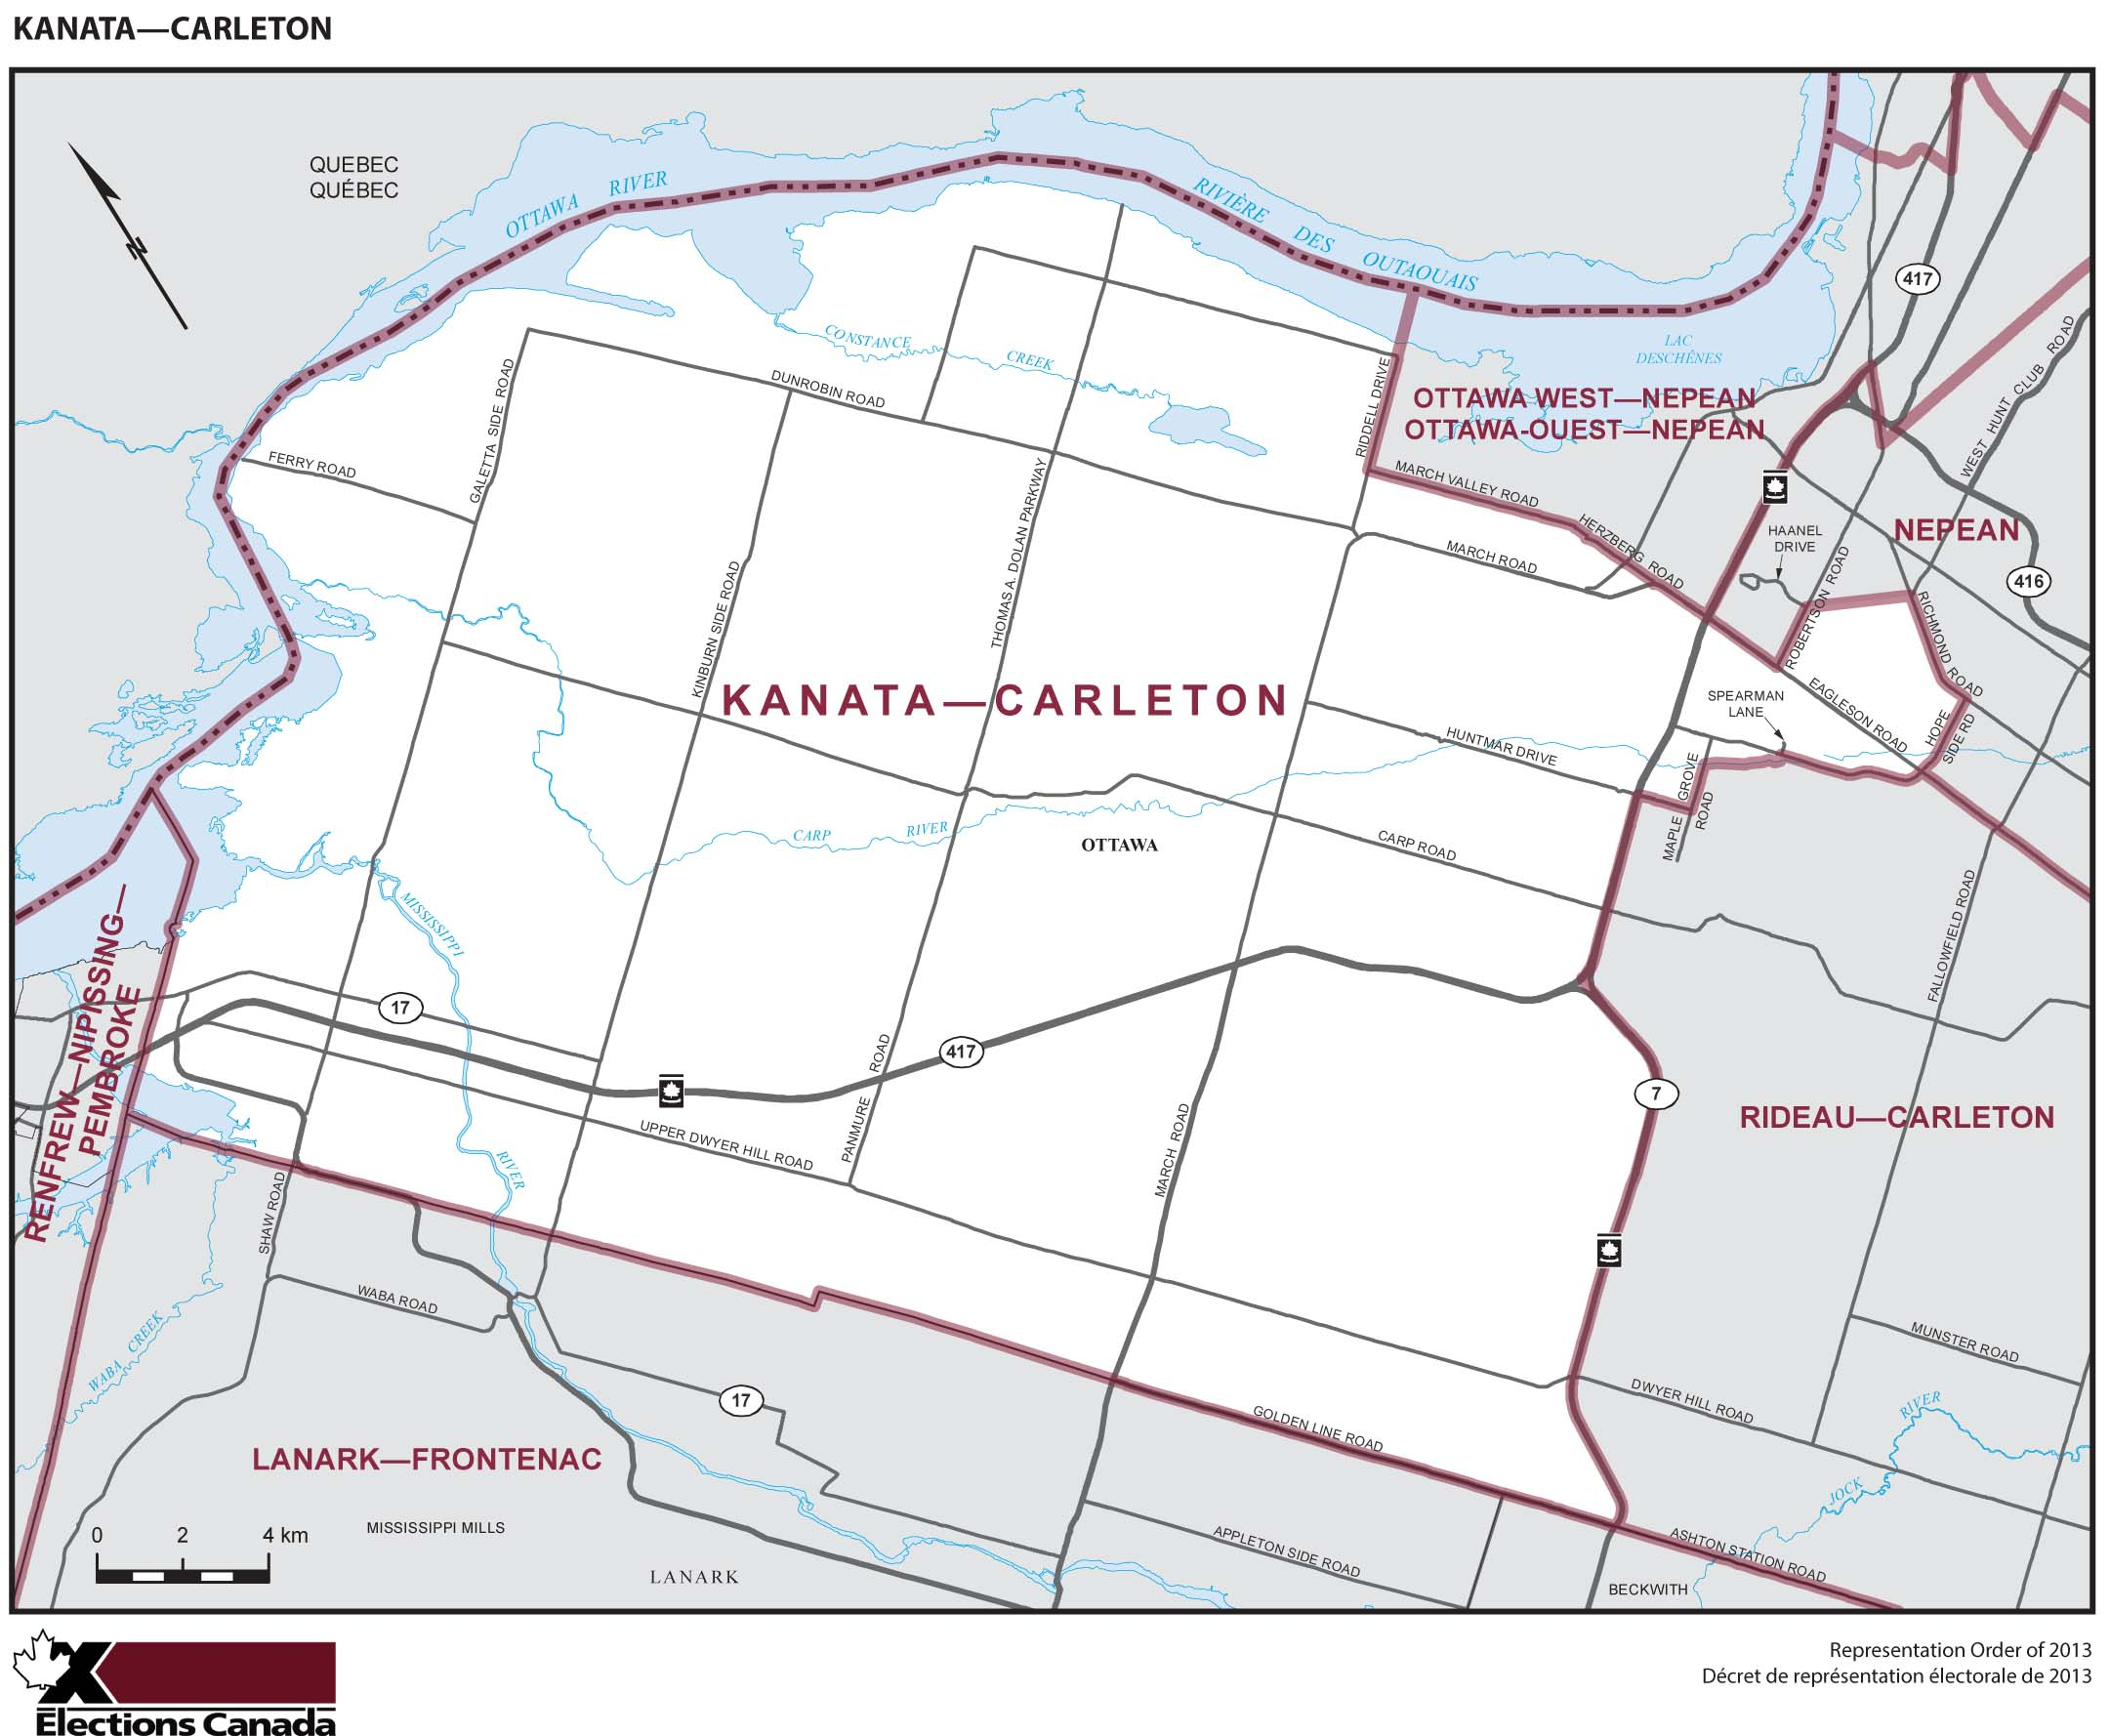 Map: Kanata--Carleton, Federal electoral district, 2013 Representation Order (in white), Ontario